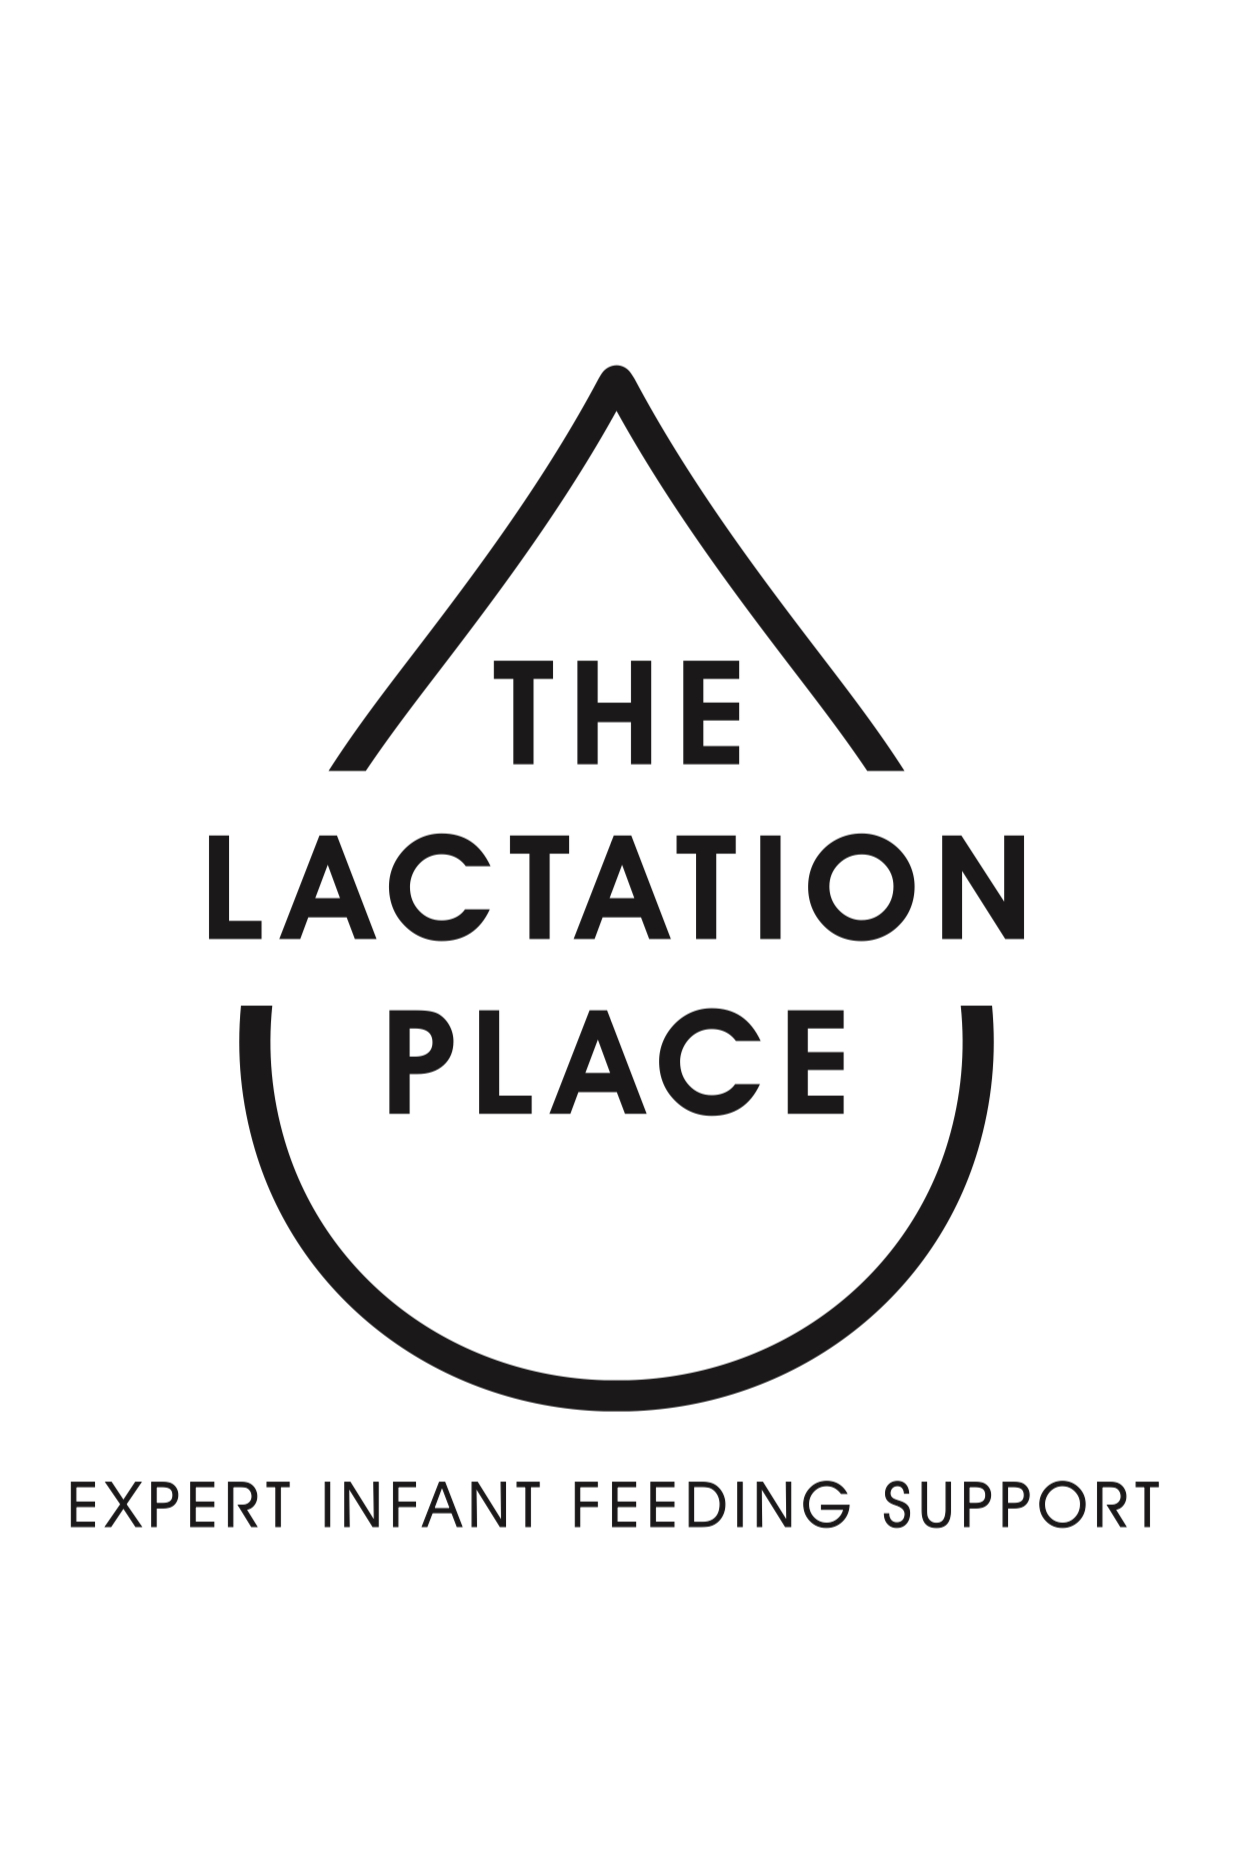 The Lactation Place